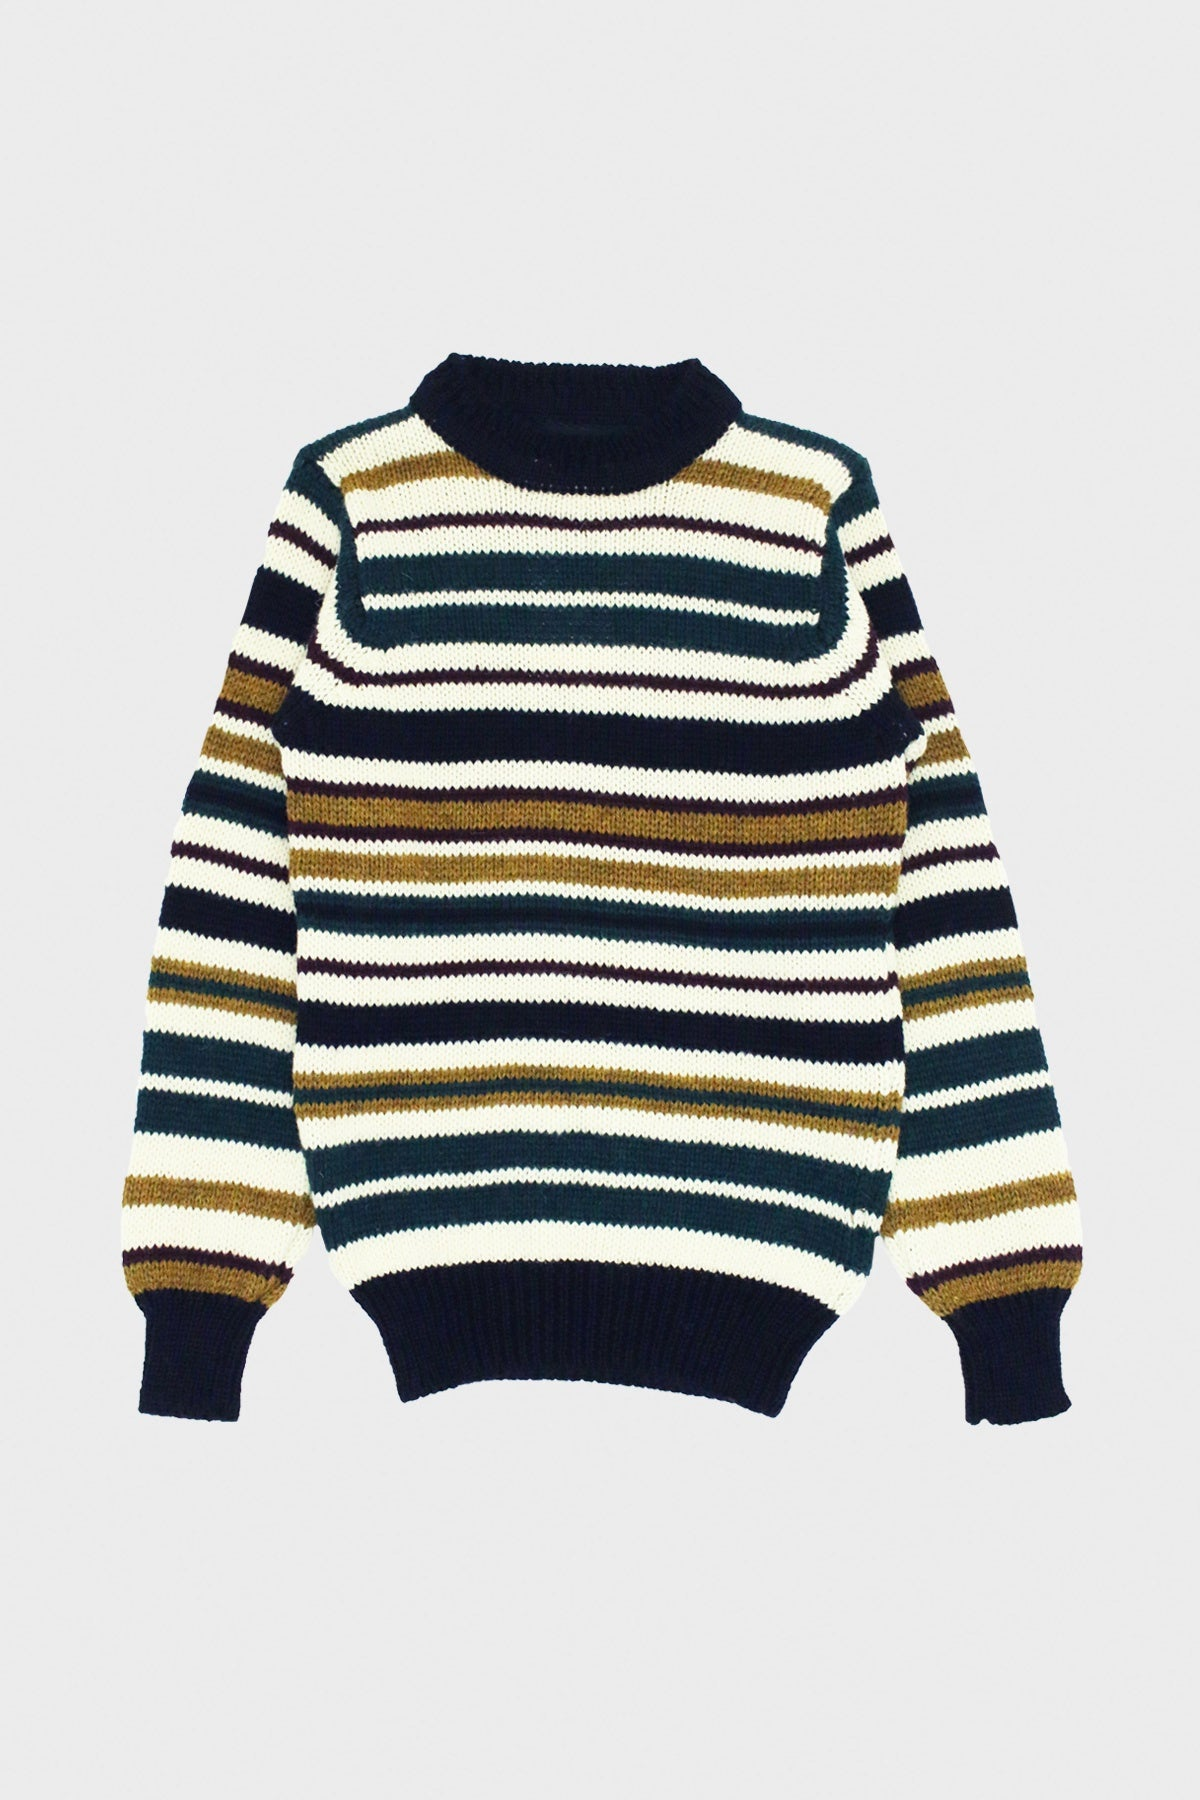 howlin Call Me Mr Love sweater - Stripes